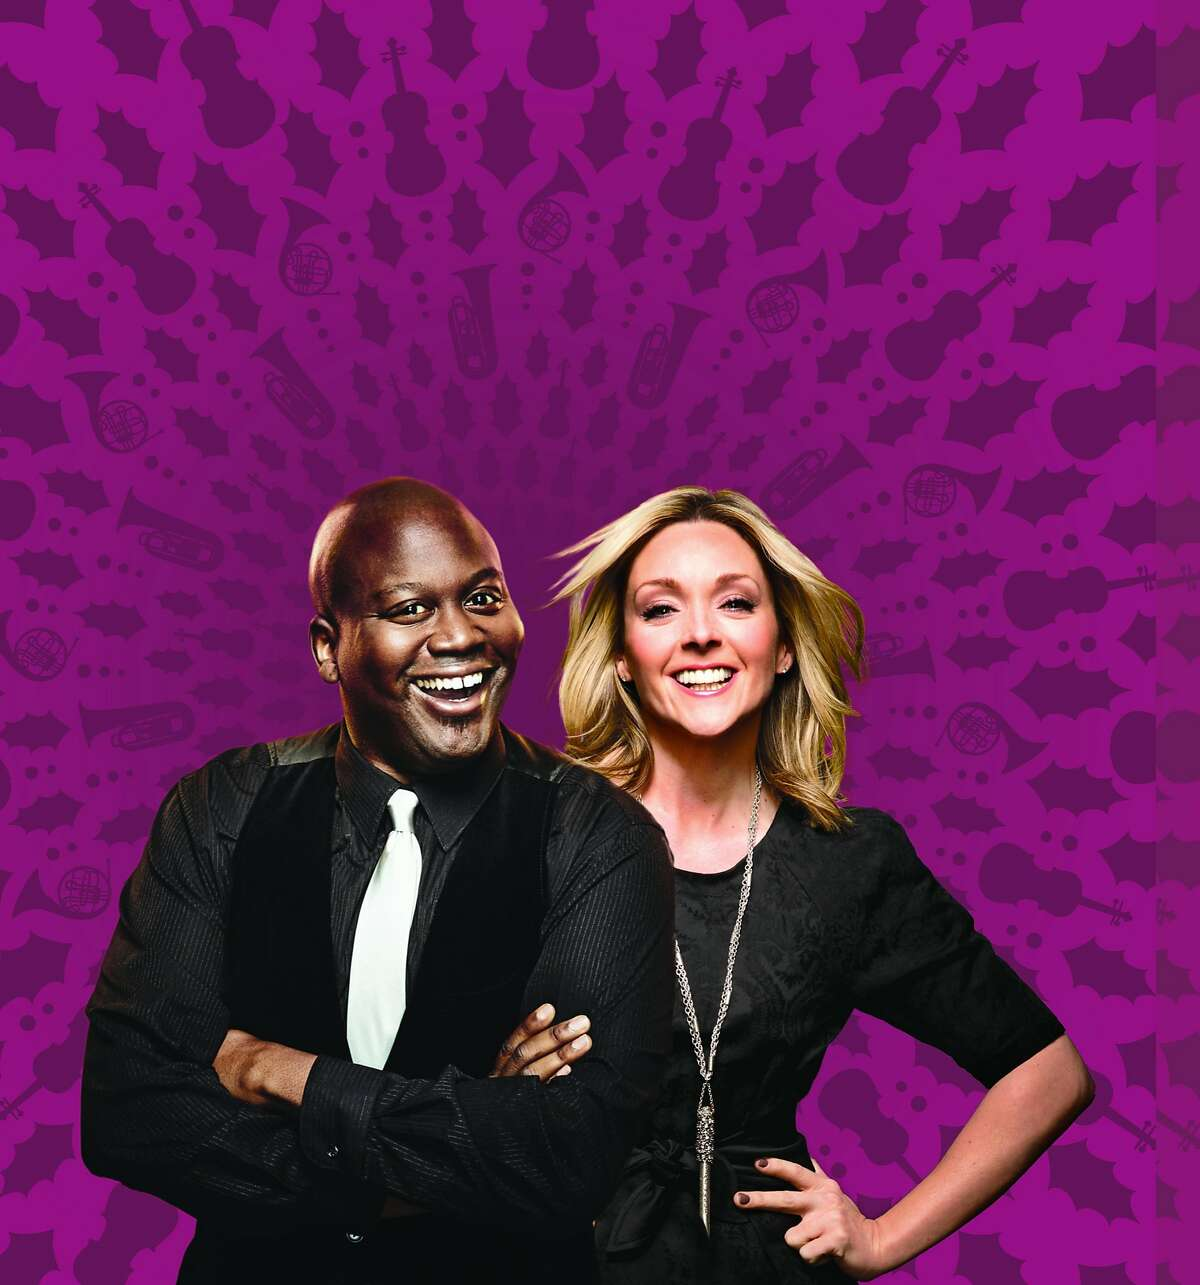 Tituss Burgess and his ��Unbreakable�Kimmy Schmidt� costar Jane Krakowski�will be appearing with the San Francisco Symphony for the first time together in concert on New Year�s Eve, Dec. 31, 2016